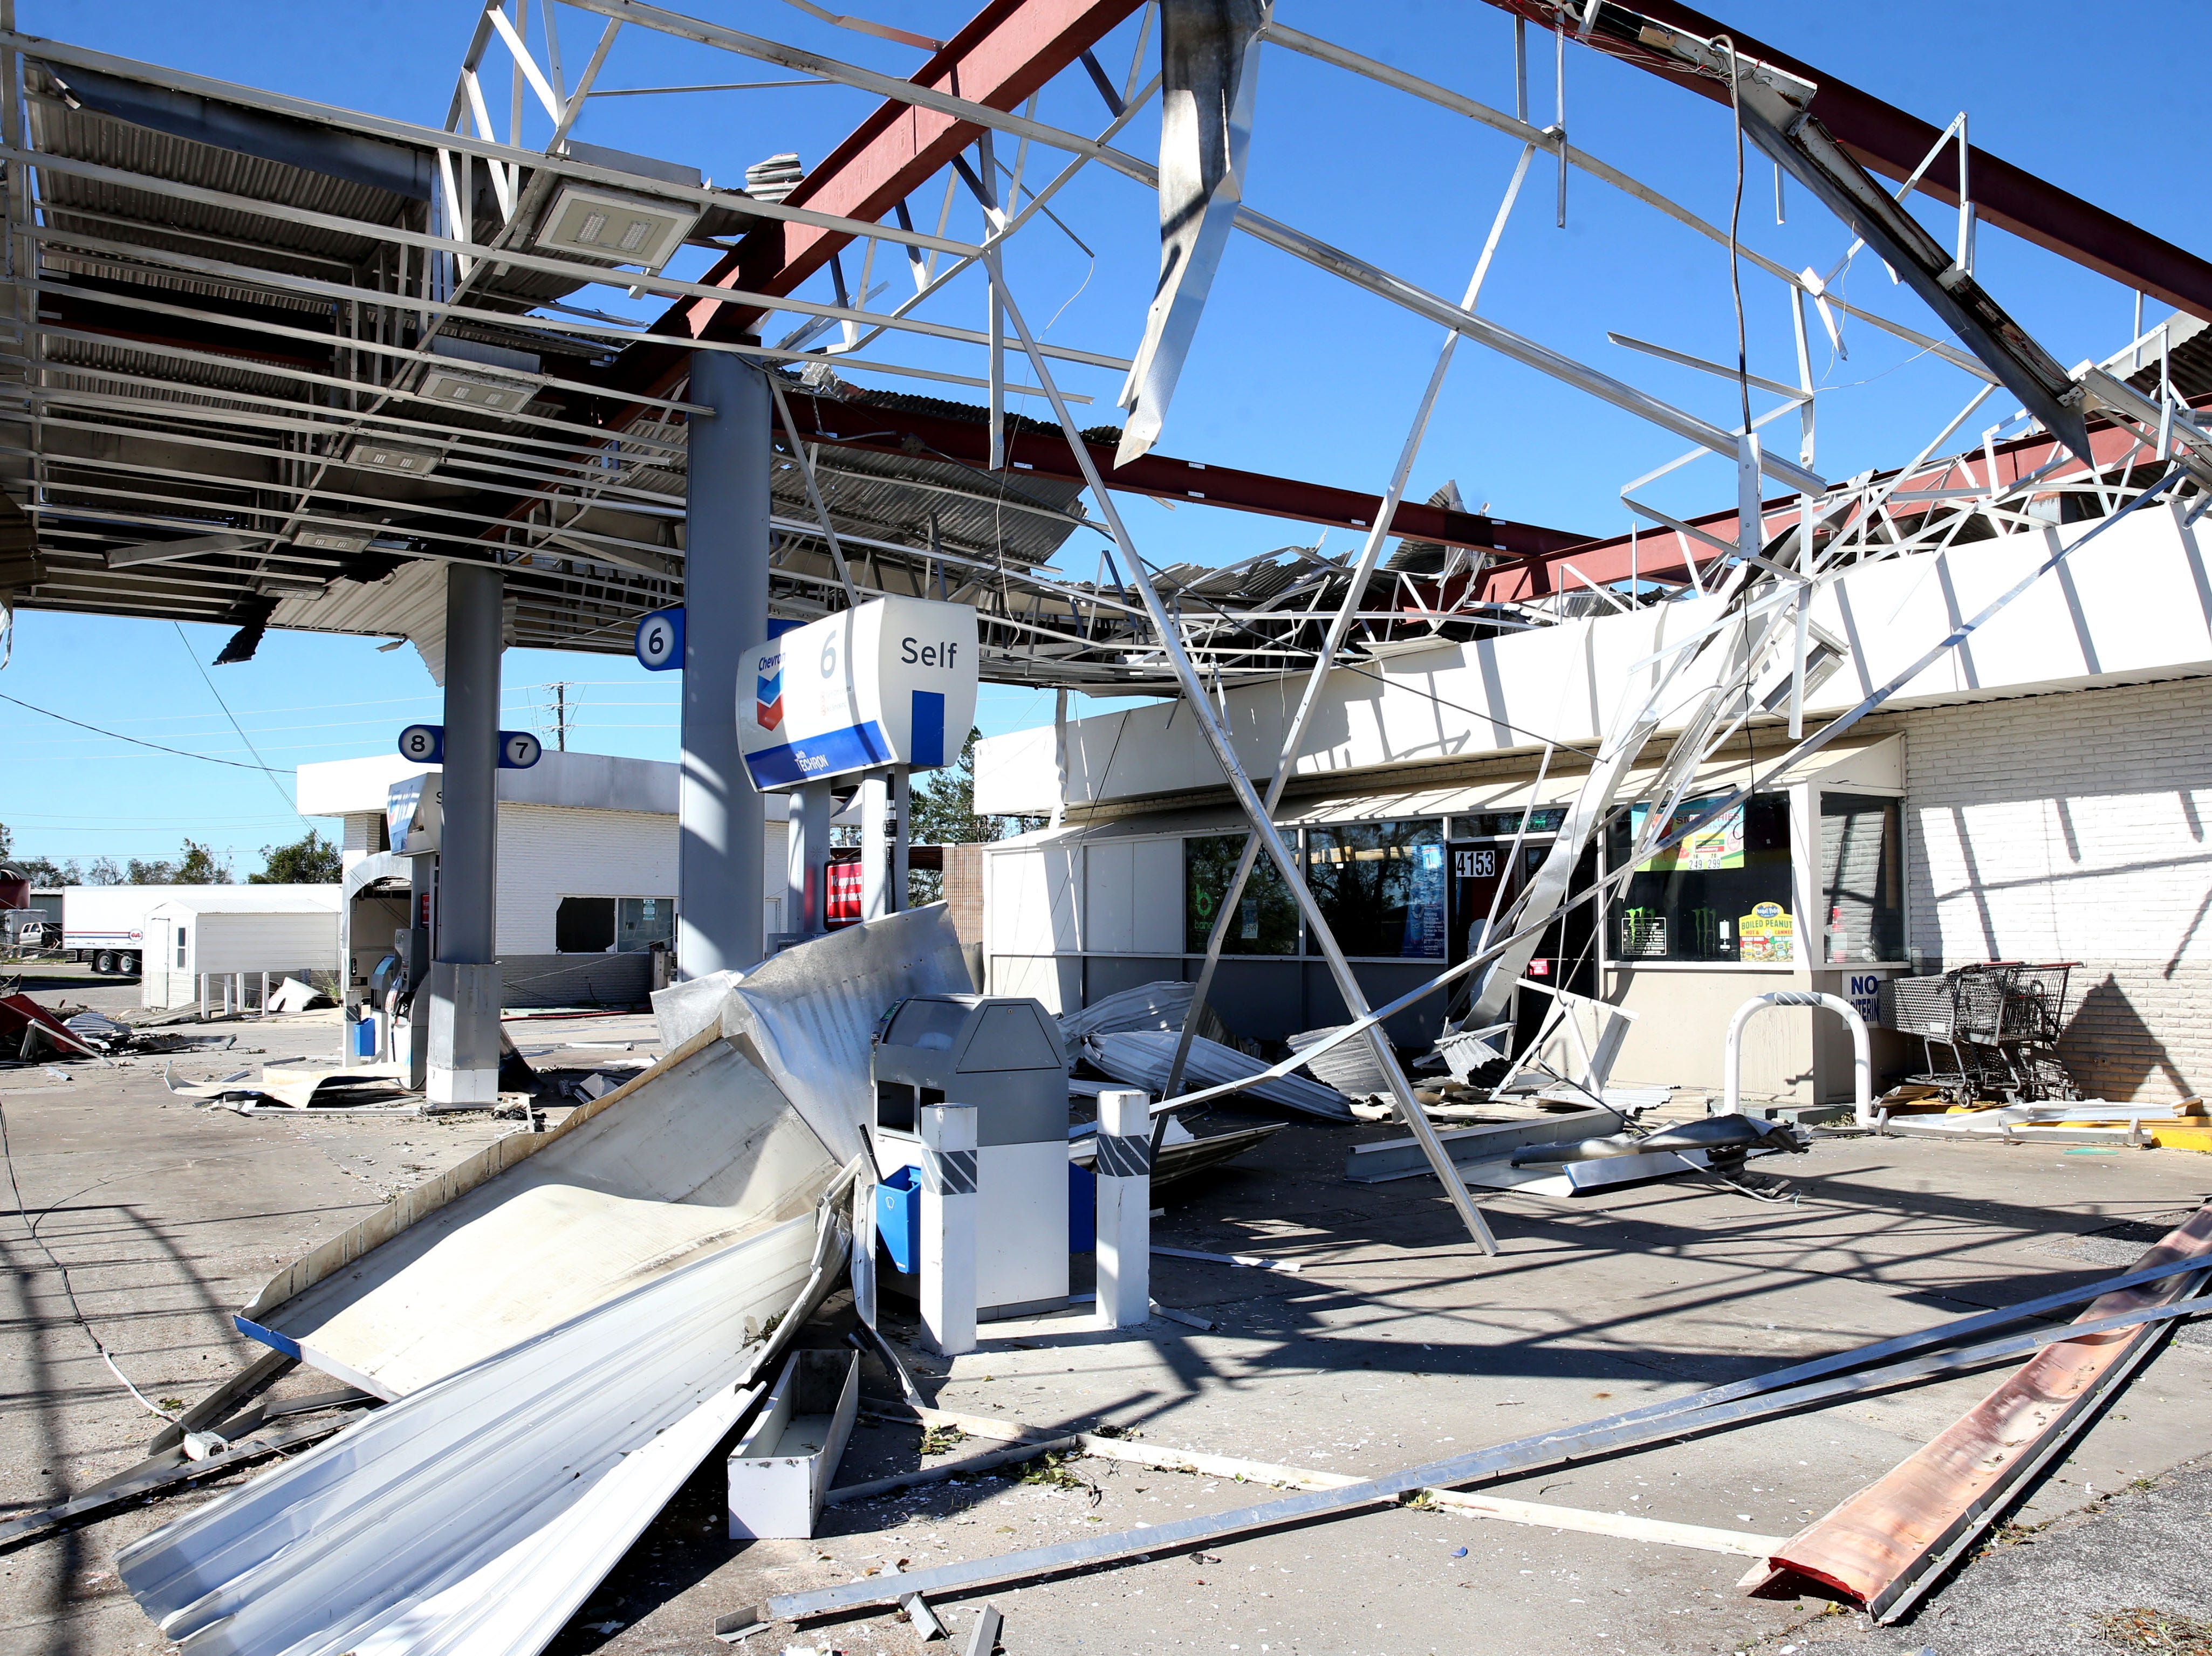 The Big Little gas station in Marianna, Fla. was torn to shreds after Hurricane Michael ripped through the panhandle on Wednesday Oct. 10, 2018. Debris surrounded the shell of  what was left of the gas station, Friday, Oct. 12, 2018.